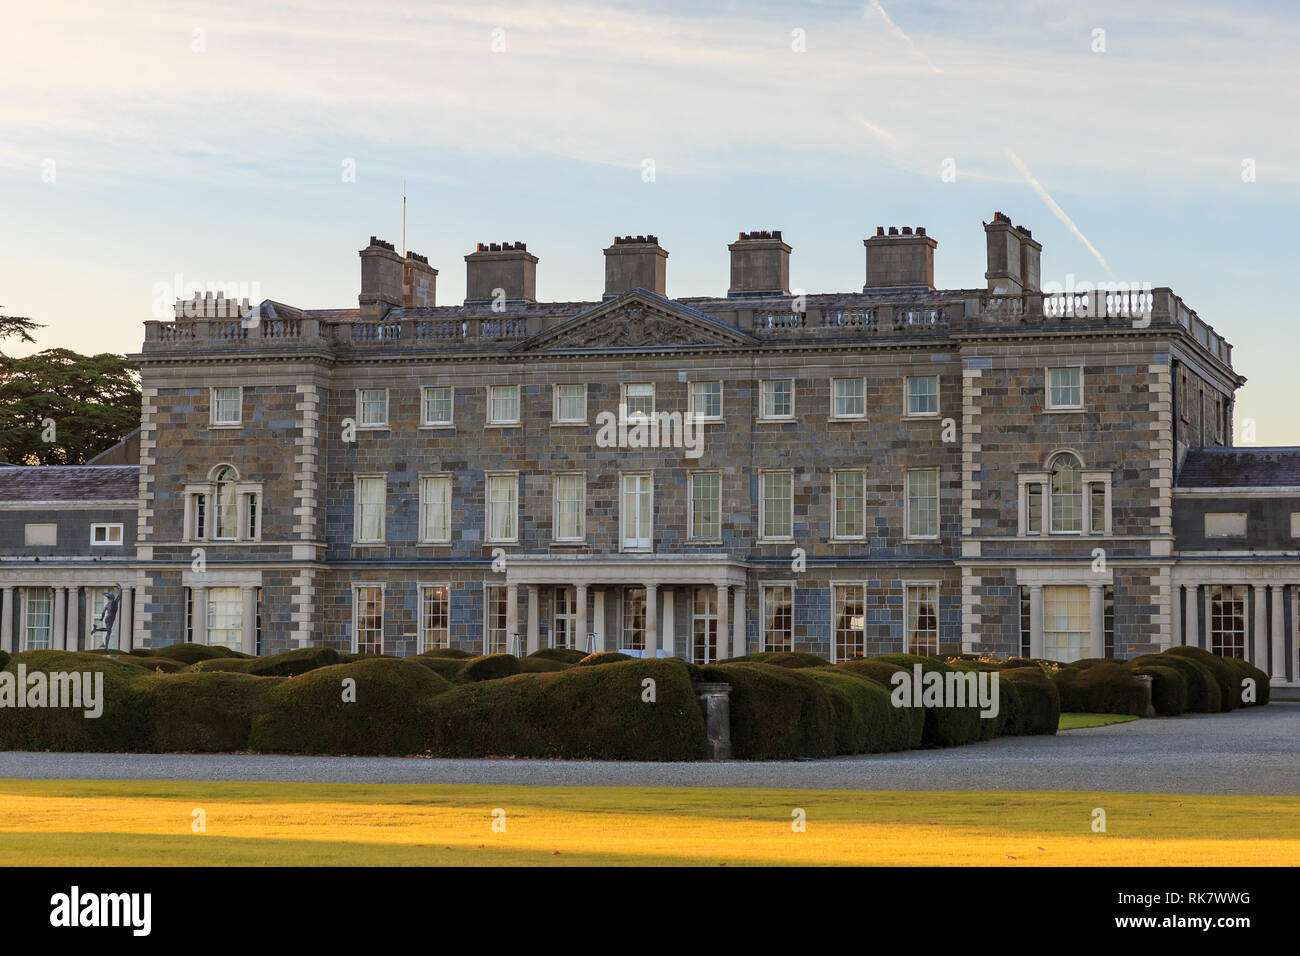 Facade of Carton House in Maynooth, County Kildare, Ireland - Stock Image